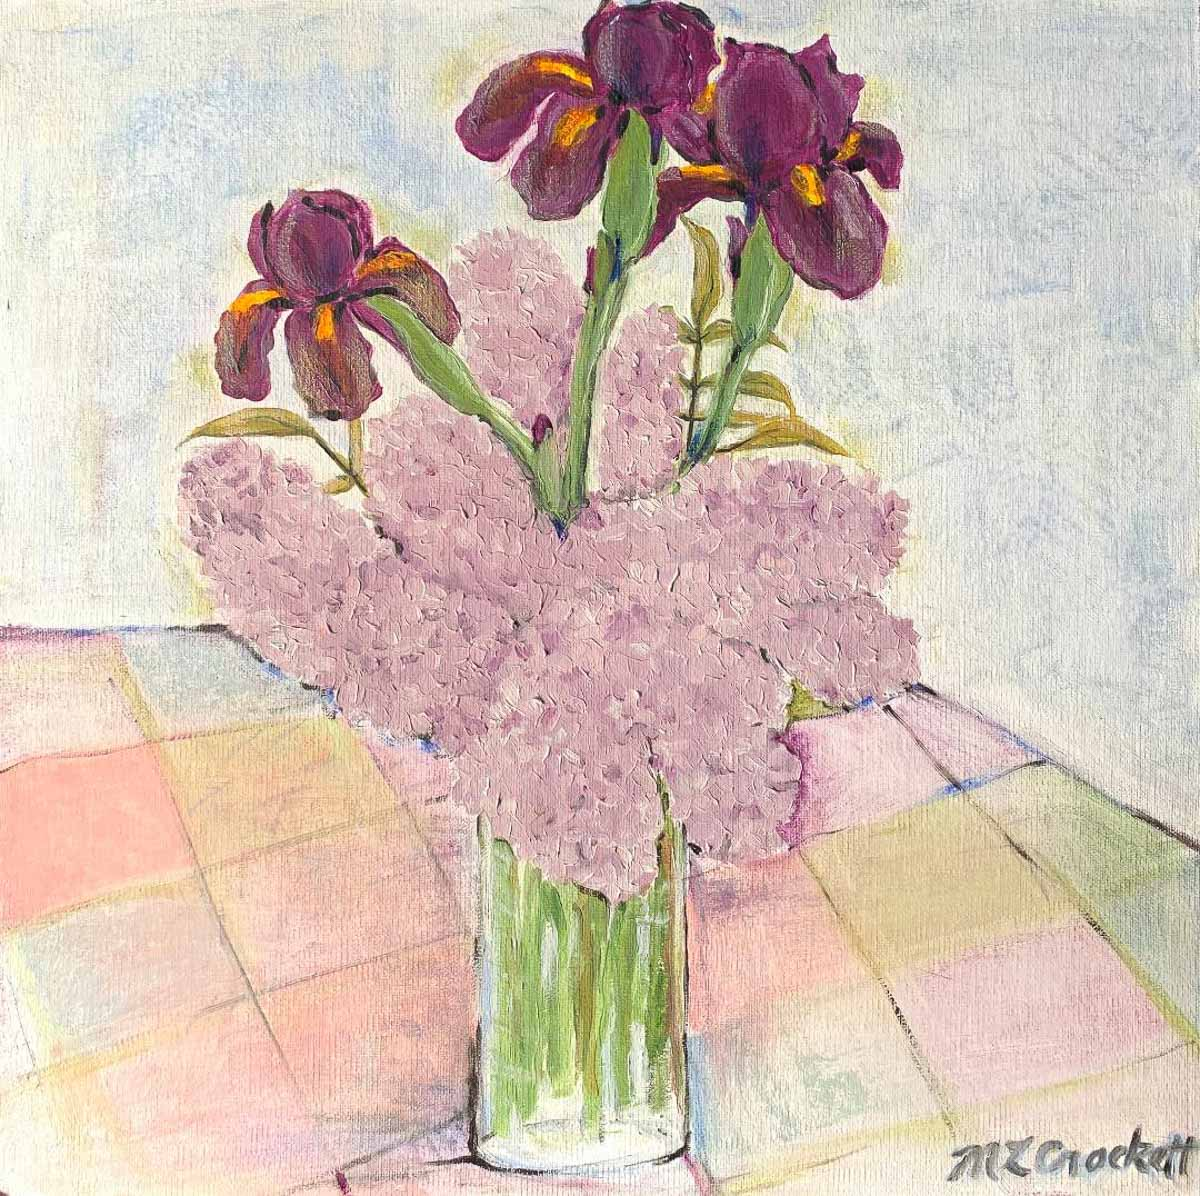 """Irises Lilacs,"" by Megan Crockett."